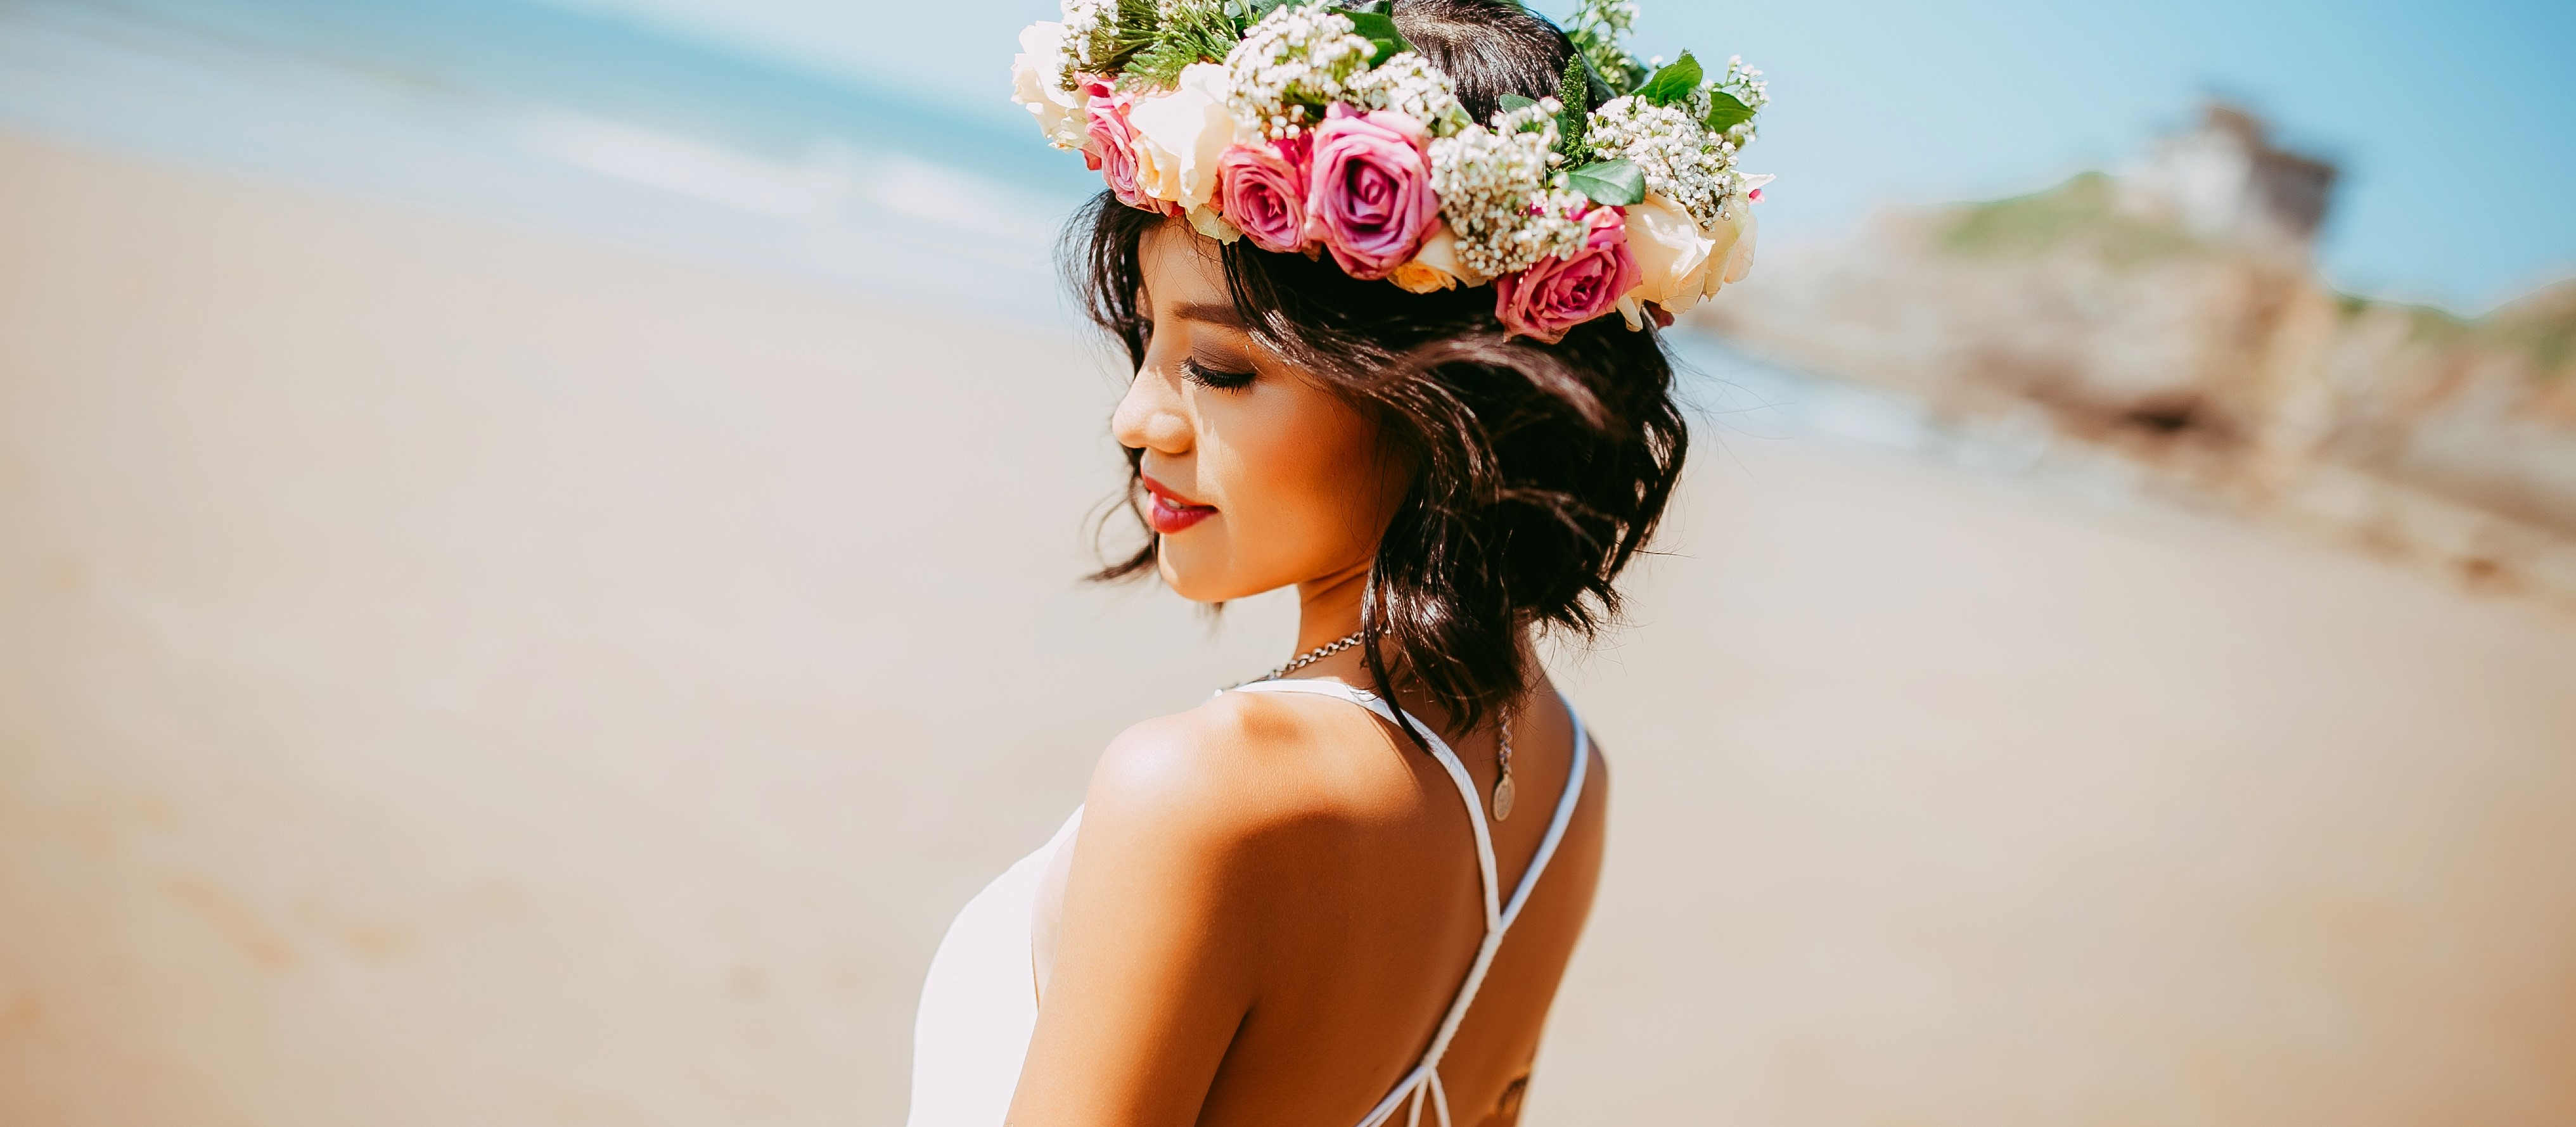 sea instagram captions, asian girl with flower crown in front of the ocean happy